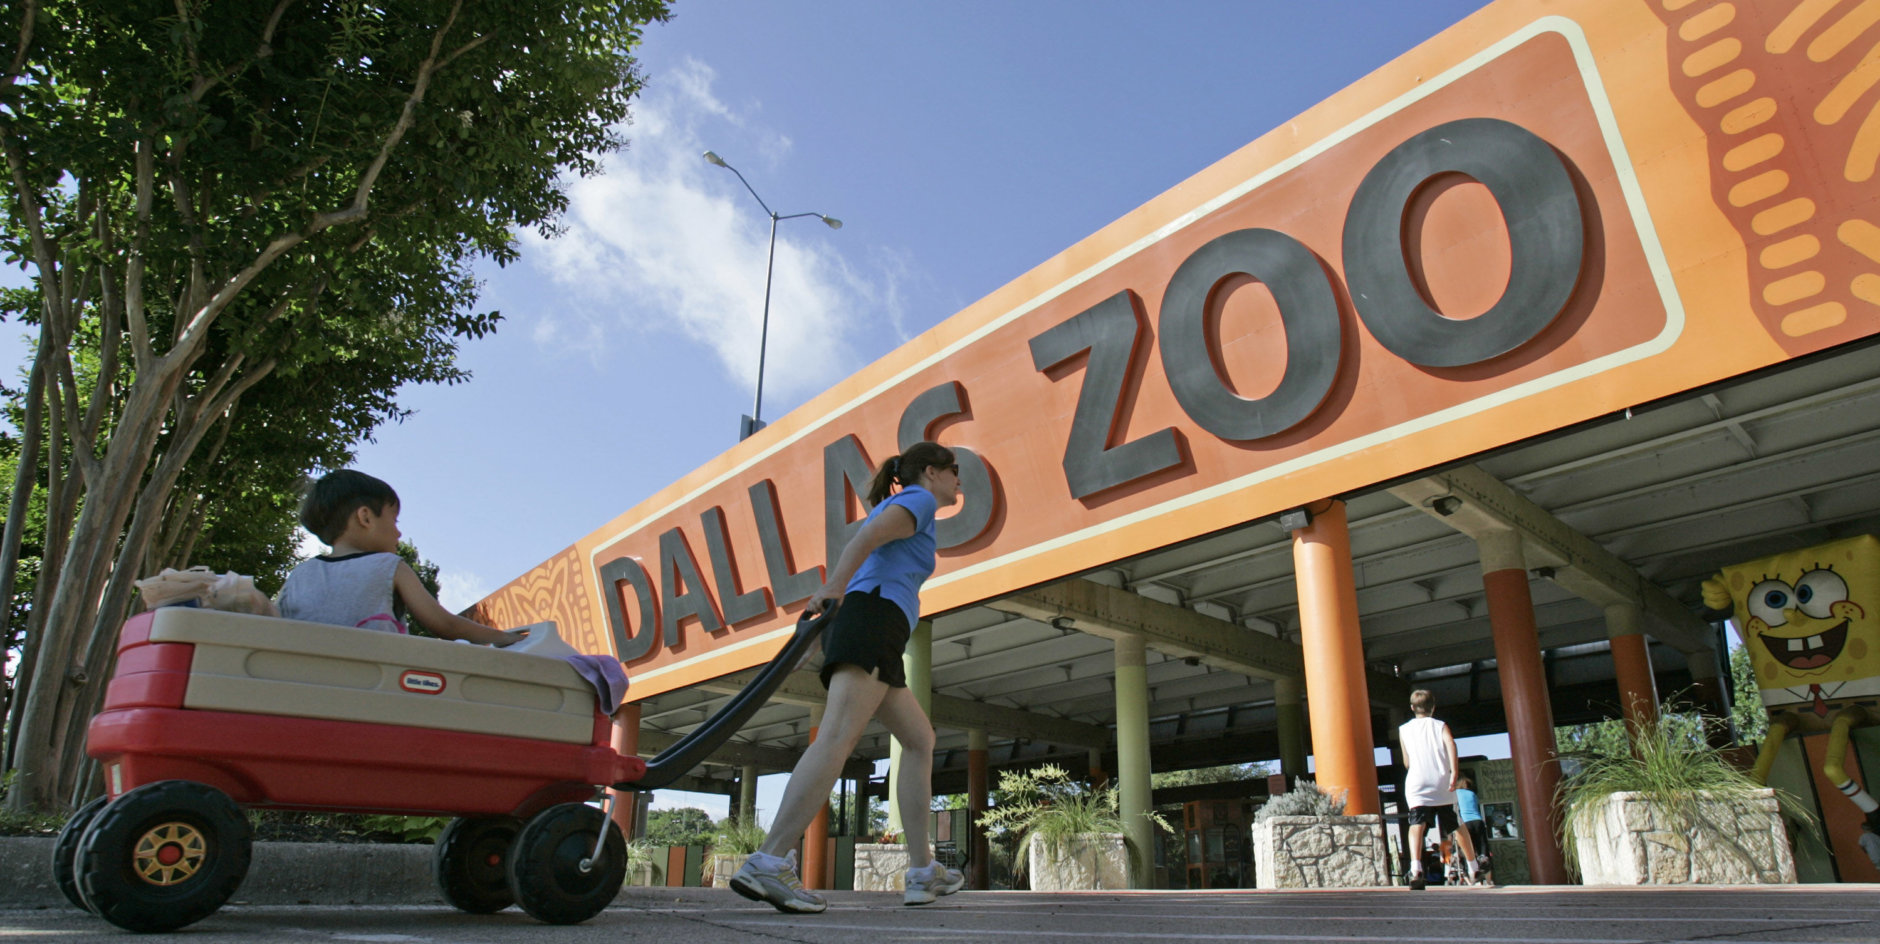 The entrance to the Dallas Zoo in Dallas,  Tuesday, June 3, 2008.  (AP Photo/Steve Helber)